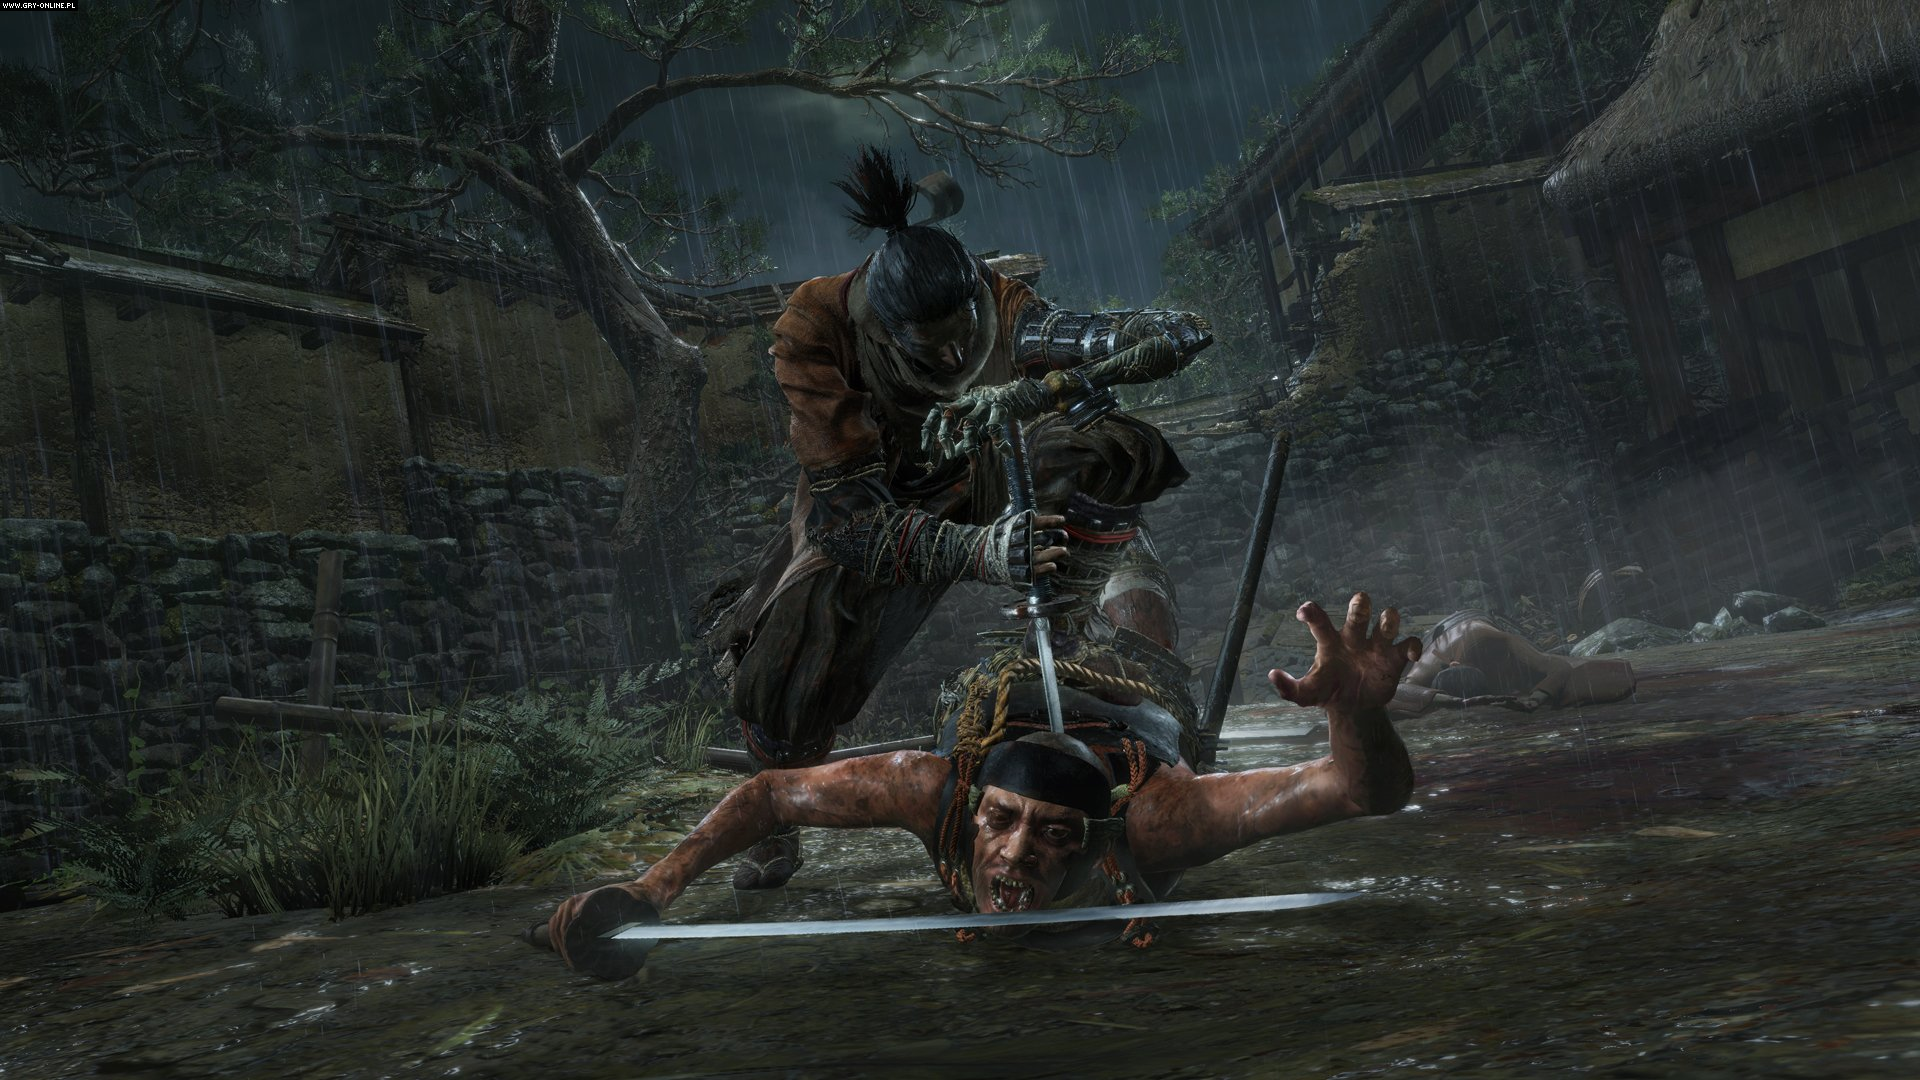 Sekiro: Shadows Die Twice PC, PS4, XONE Games Image 13/29, FromSoftware, Activision Blizzard